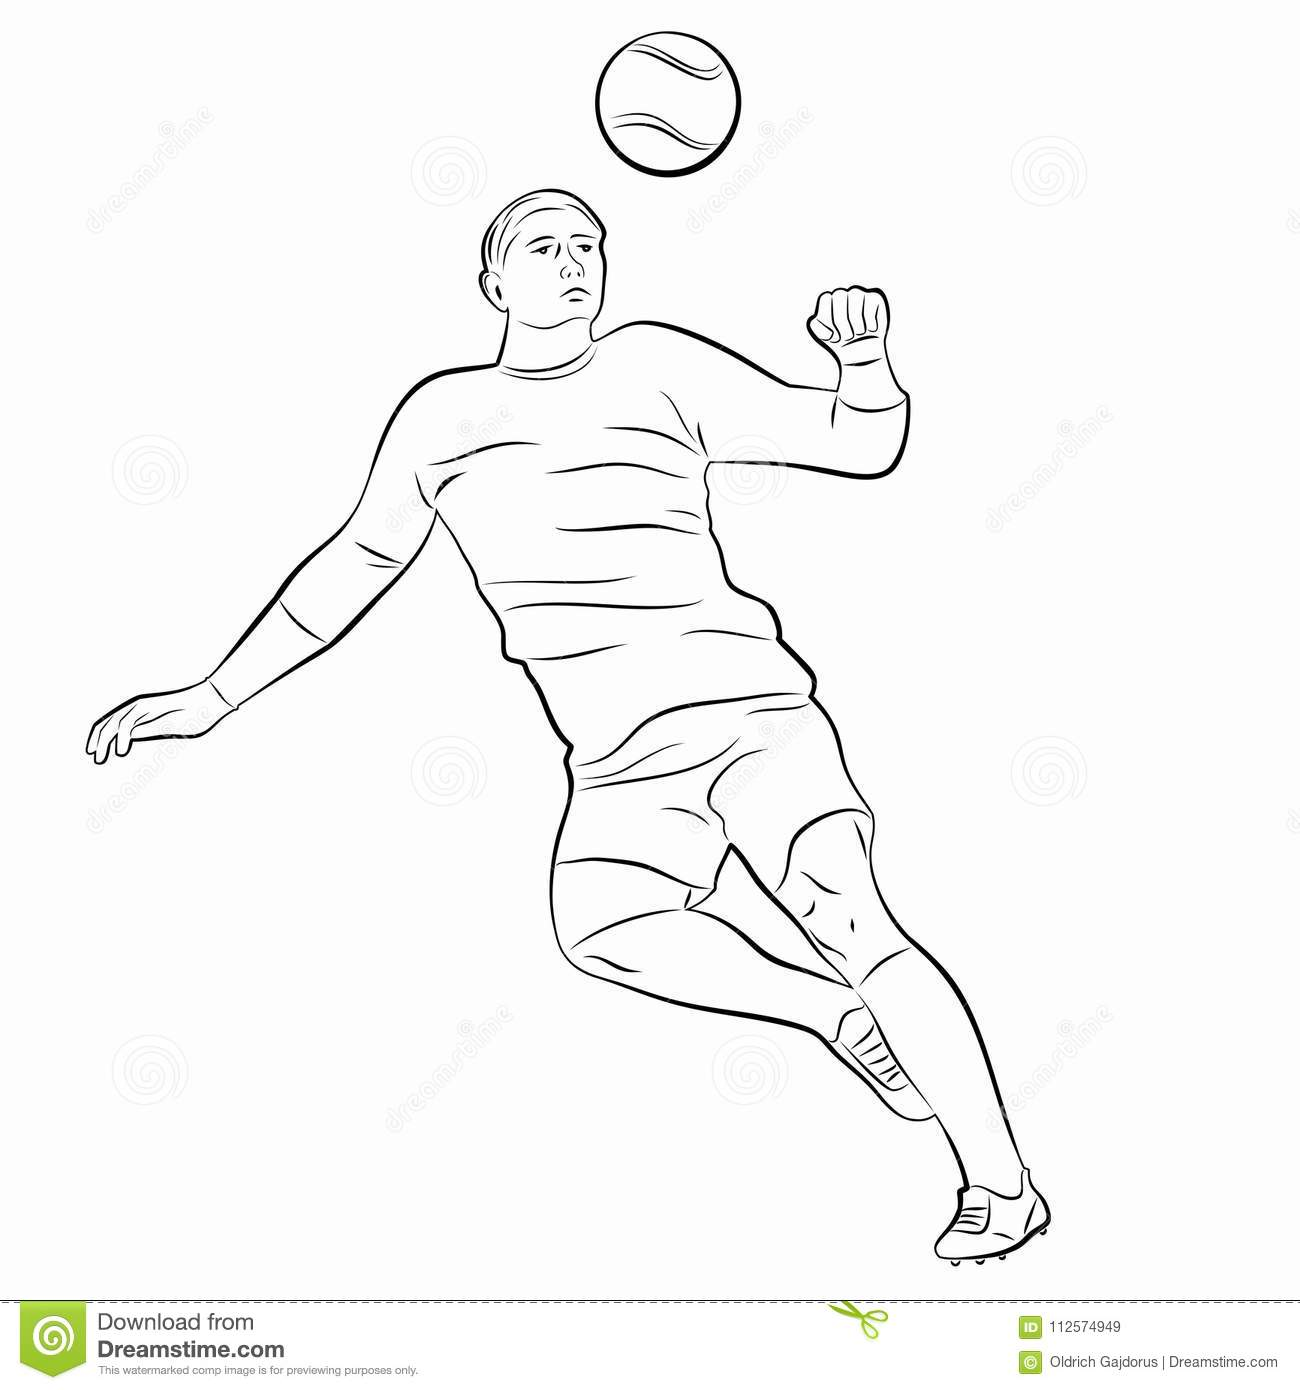 Silhouette Of Soccer Player, Vector Draw Stock Vector